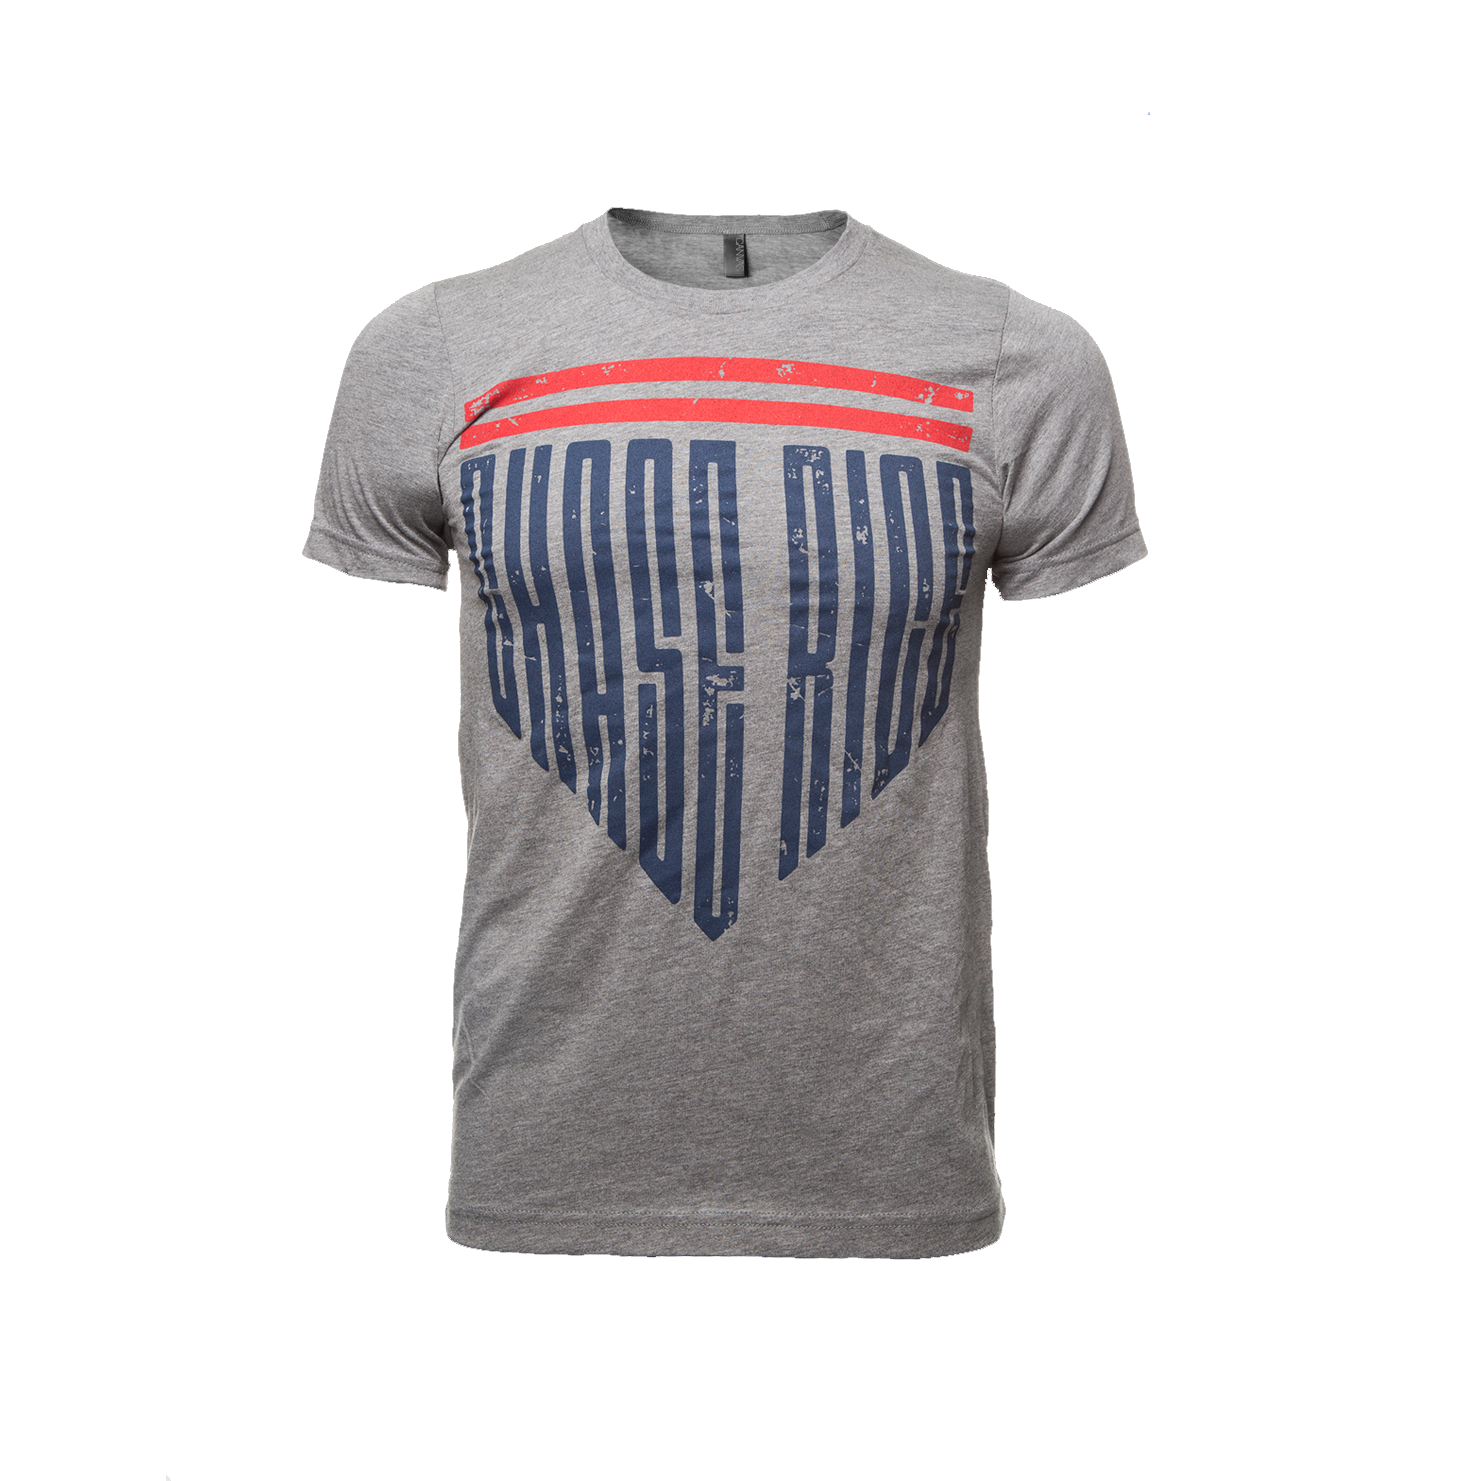 Chase rice png. Shield tee